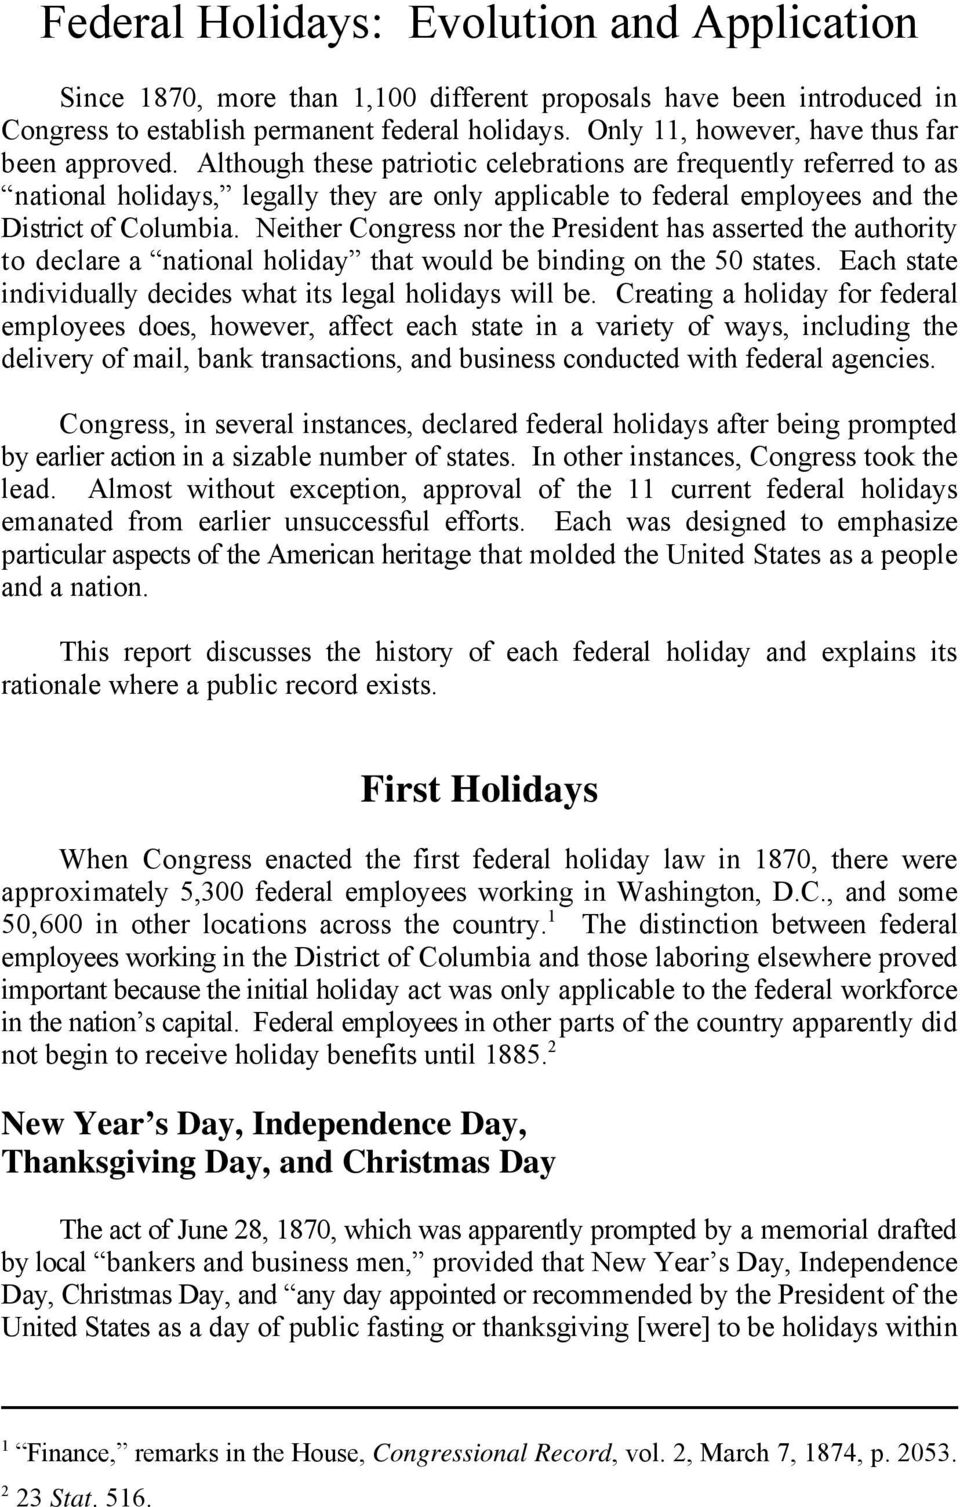 Although these patriotic celebrations are frequently referred to as national holidays, legally they are only applicable to federal employees and the District of Columbia.